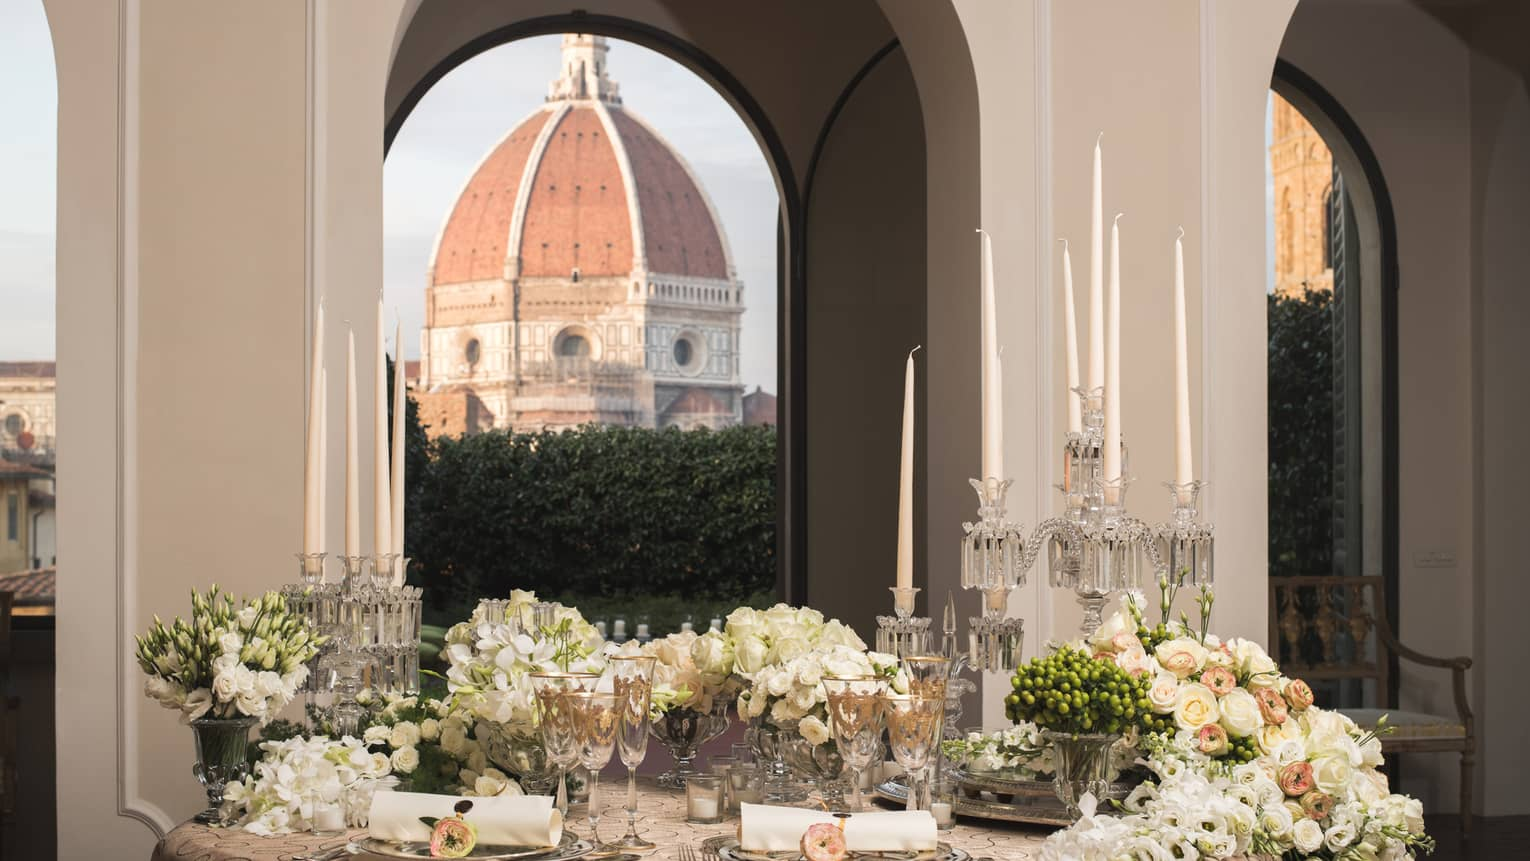 White roses, flowers on elegant banquet table under pillows, Duomo views